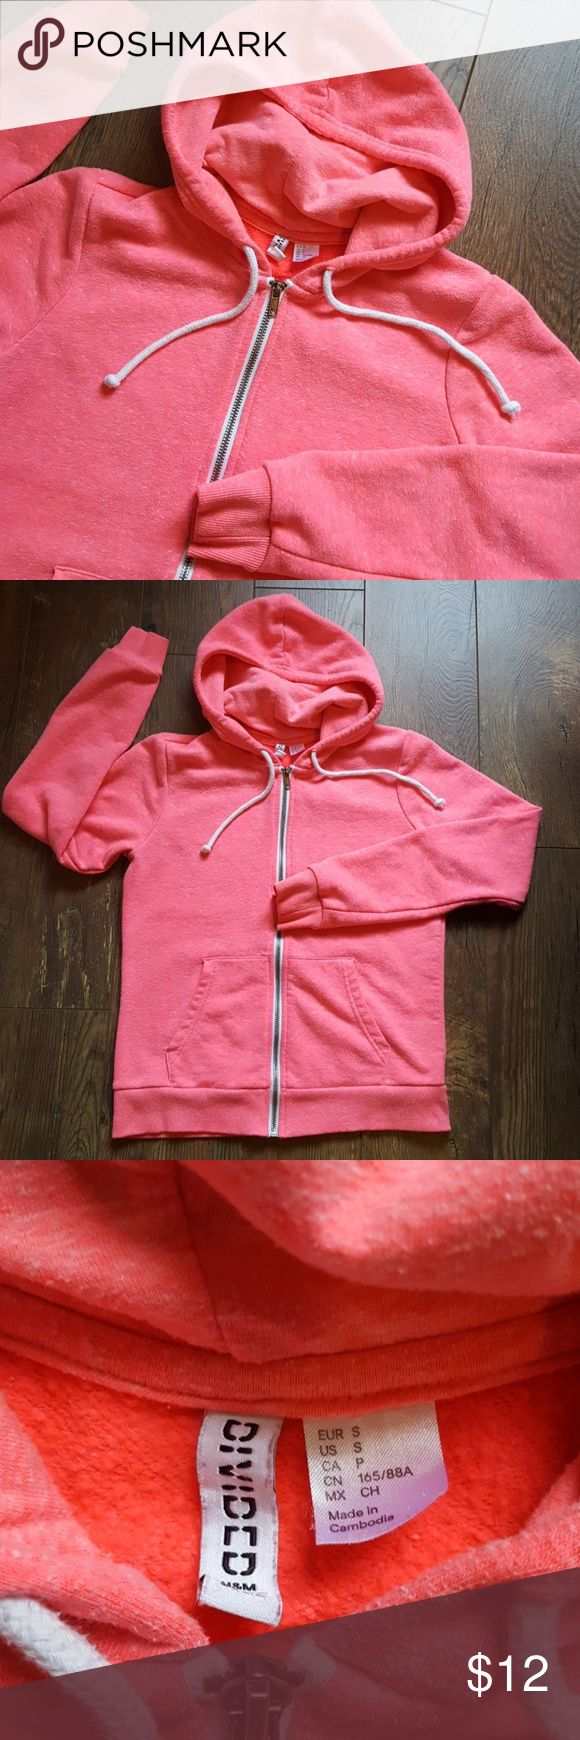 H & M DIVIDED SWEATSHIRT LOVE the color💕💕 Size small  Excellent pre-loved condition  H & M DIVIDED hooded sweatshirt with zippered front H&M Tops Sweatshirts & Hoodies